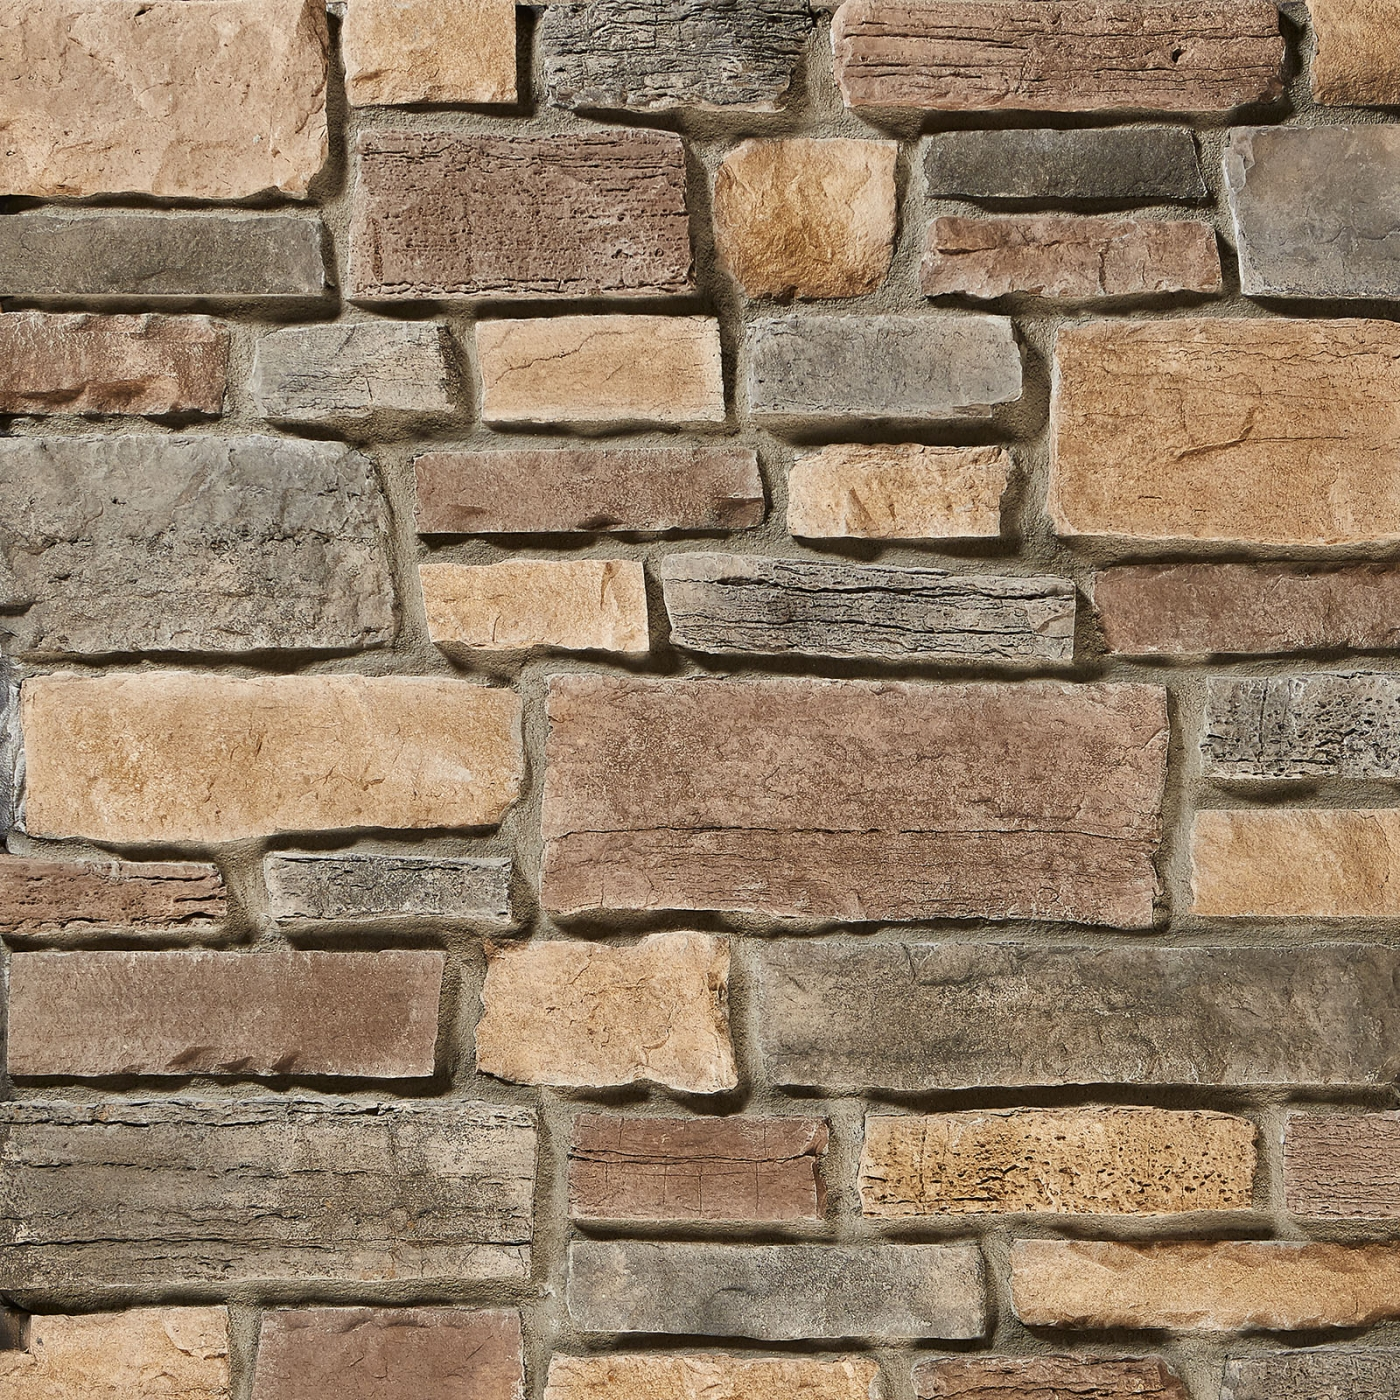 Aspen Weather Edge Rubble Stone Veneer from Environmental StoneWorks